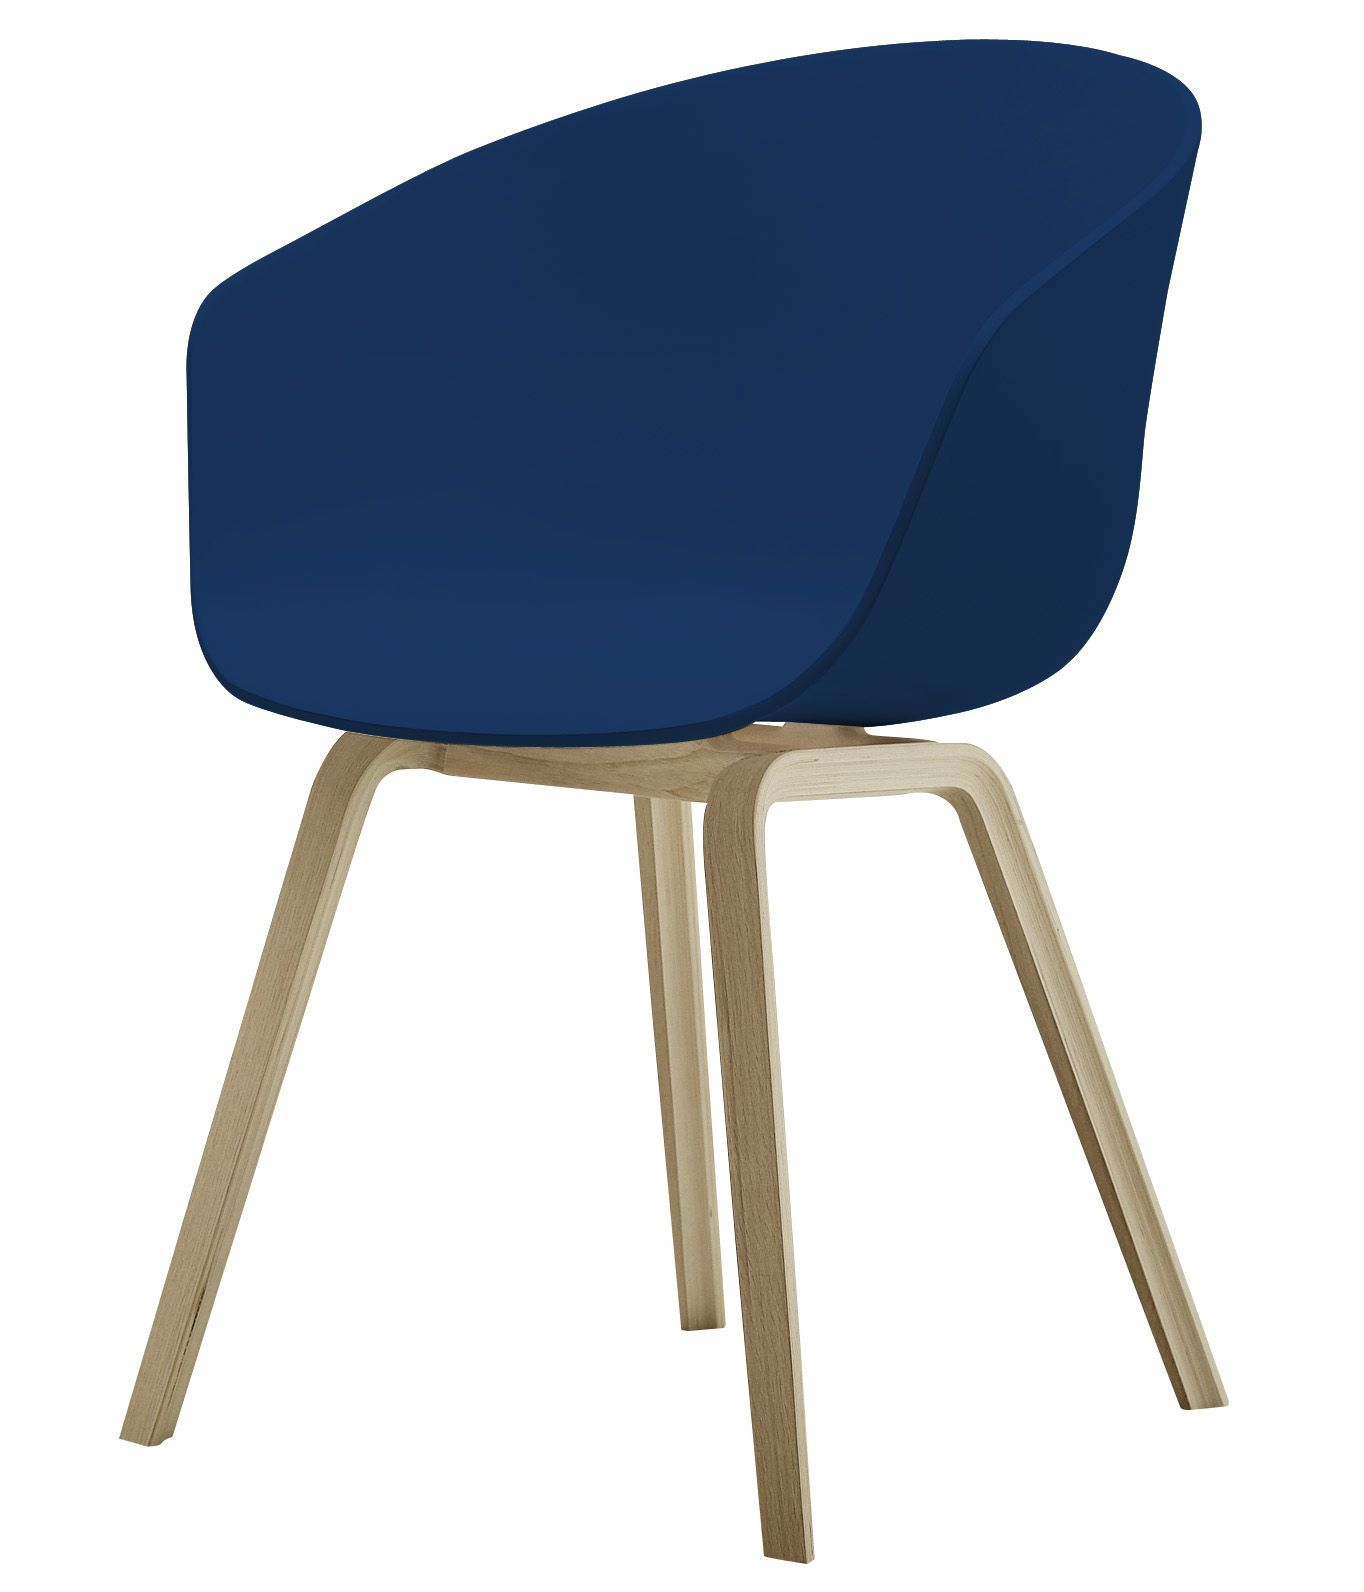 About A Chair Armchair Plastic Shell Wood Legs By Hay